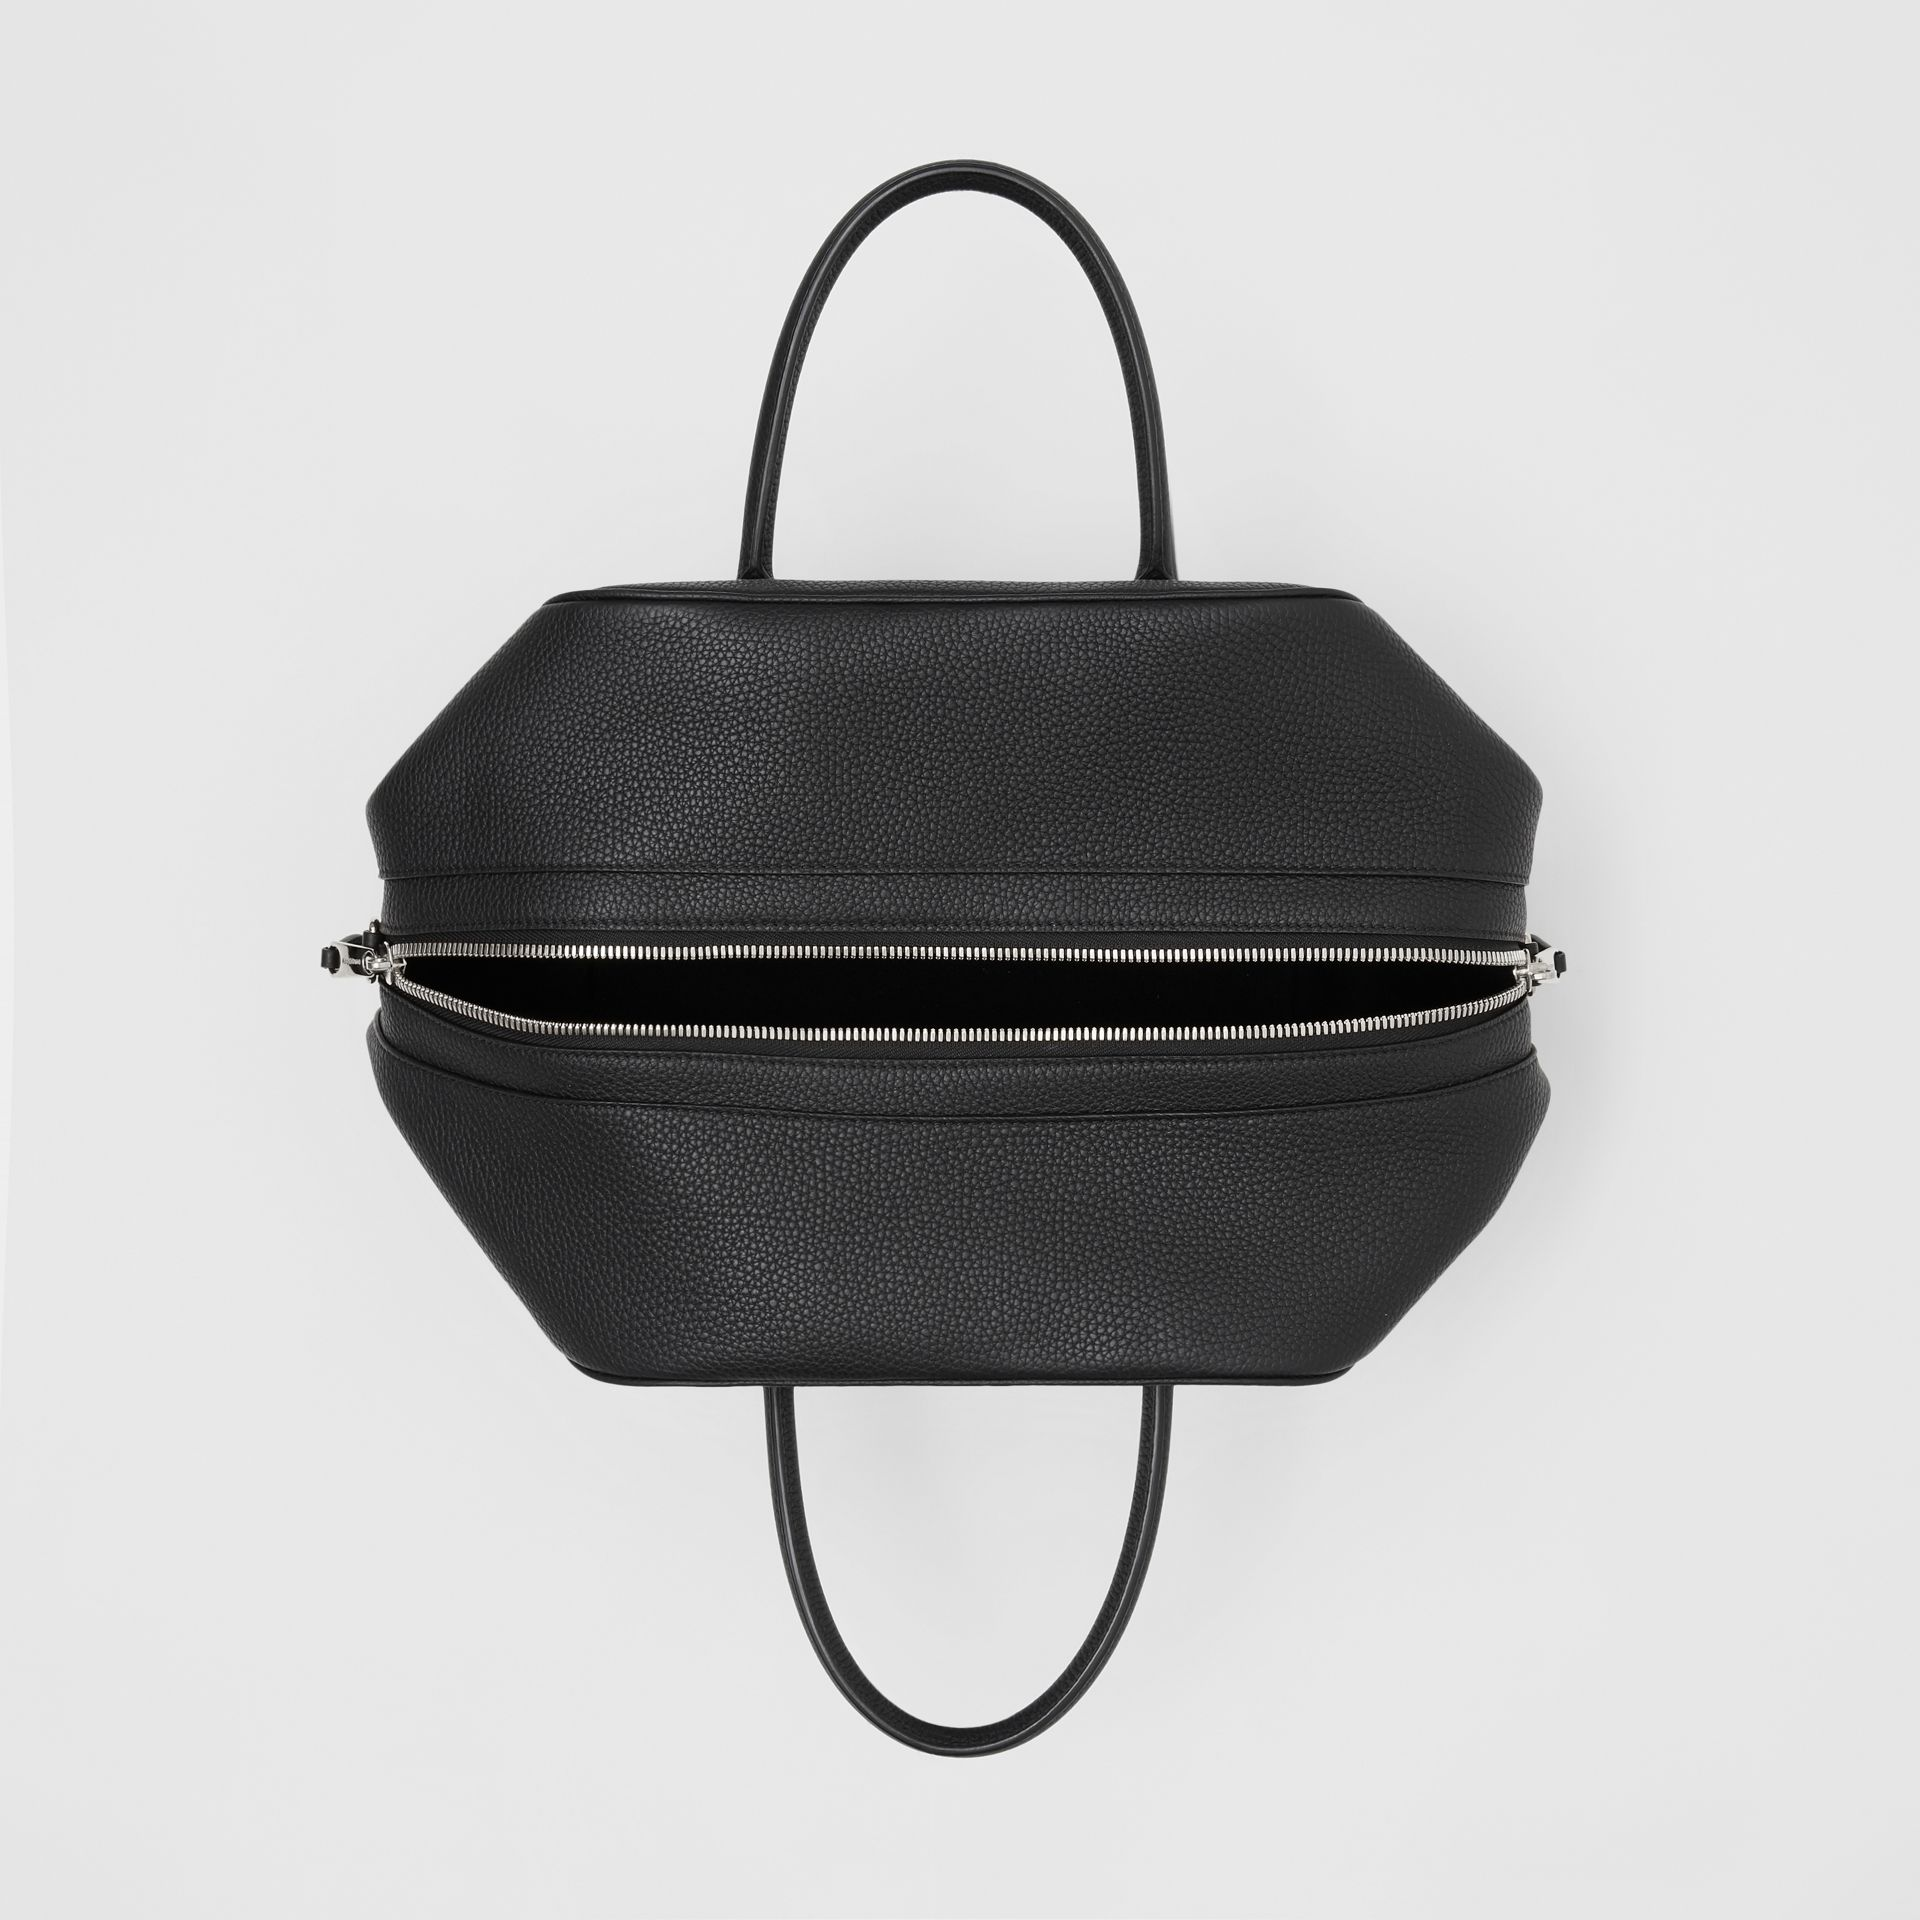 Medium Leather Cube Bag in Black - Women | Burberry - gallery image 4